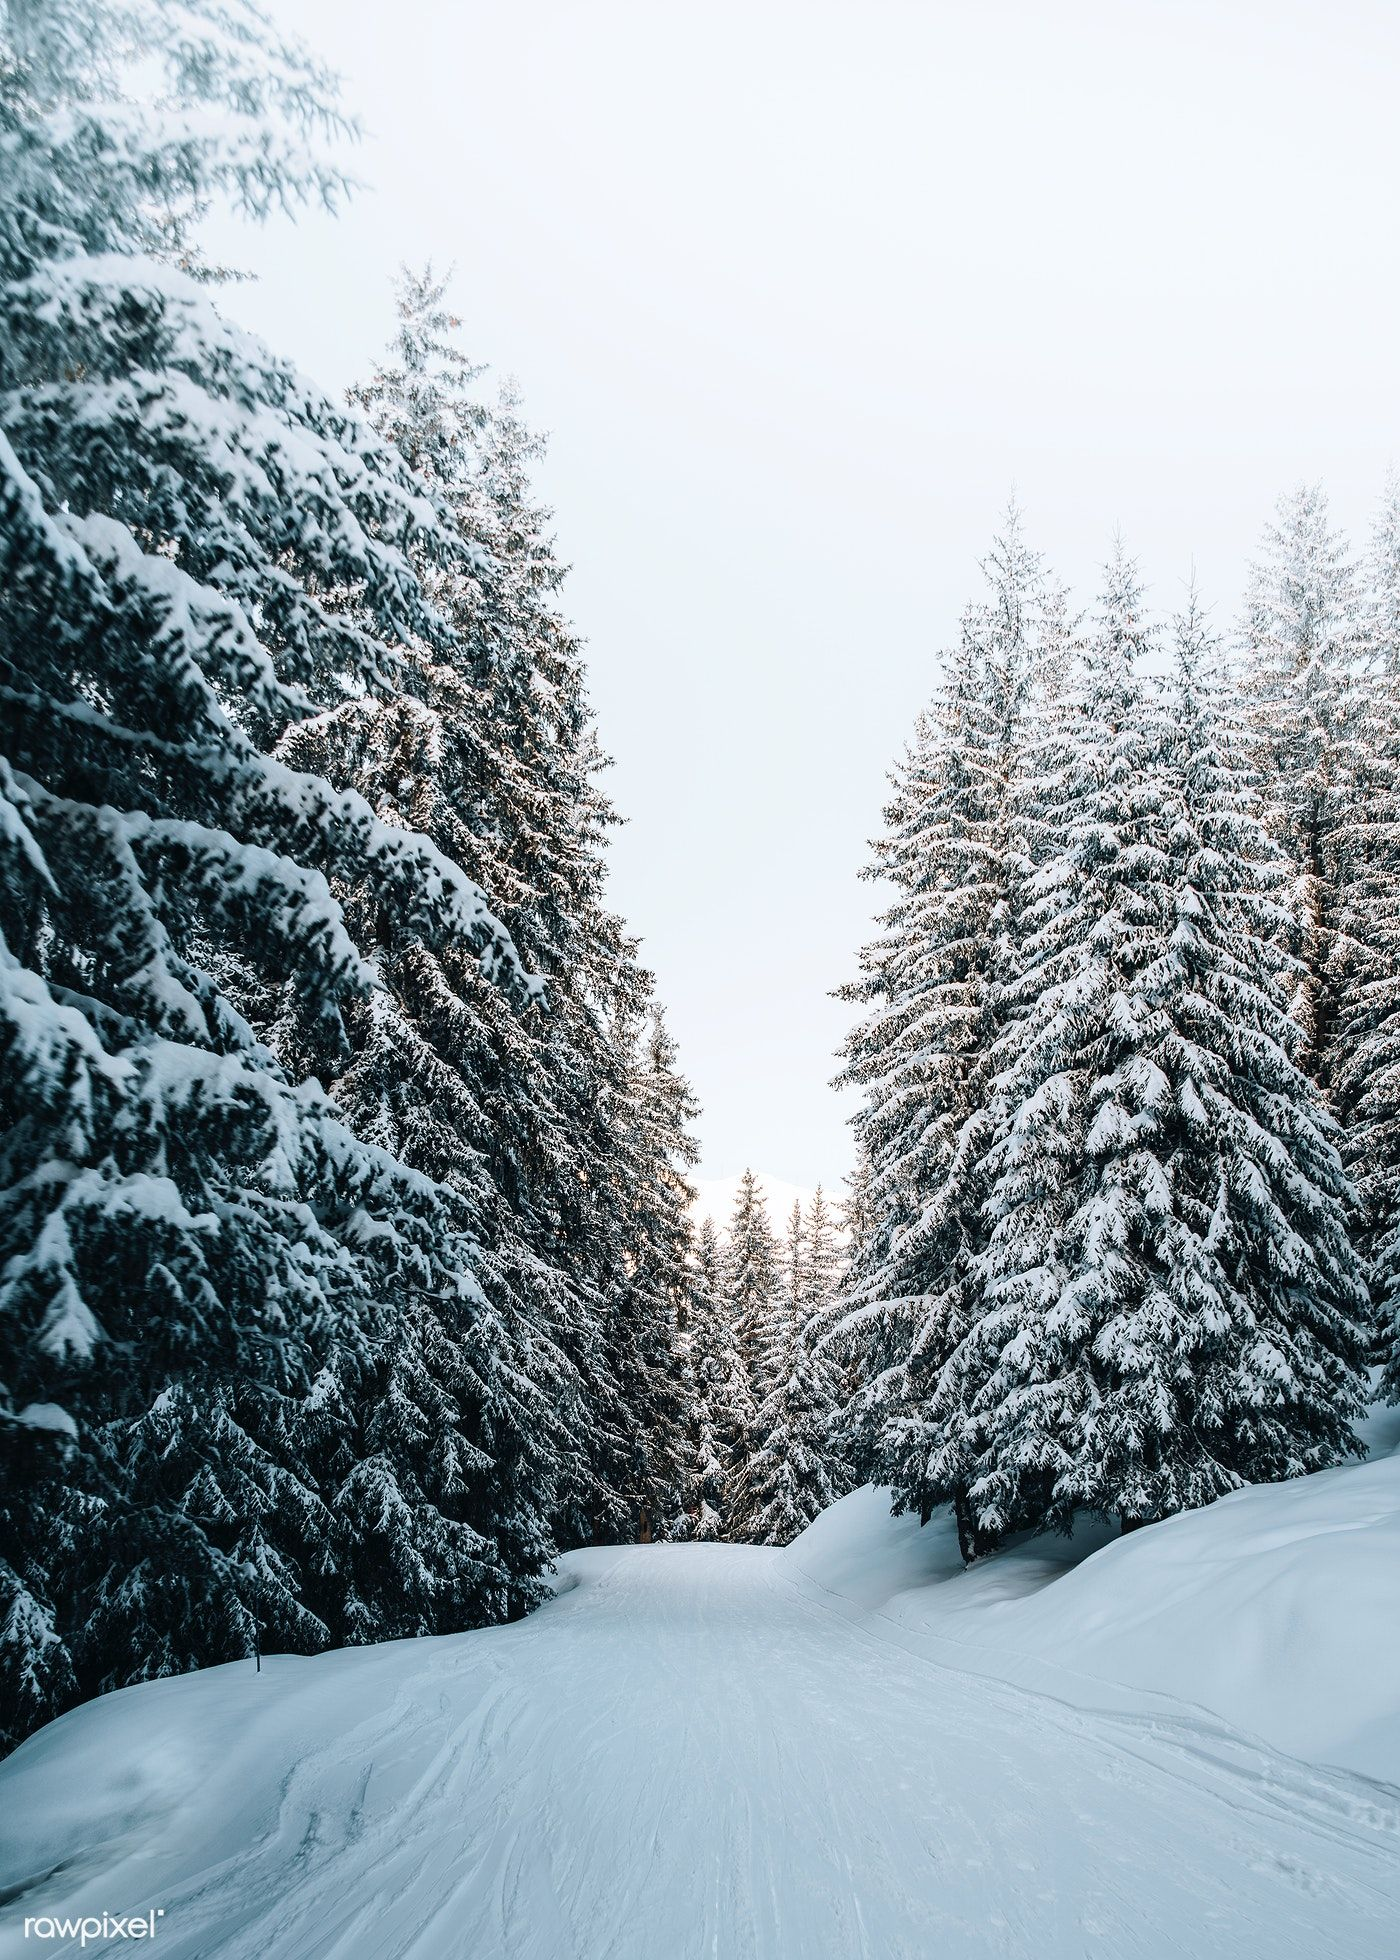 Download Premium Photo Of View Of A Snowy Forest 2255747